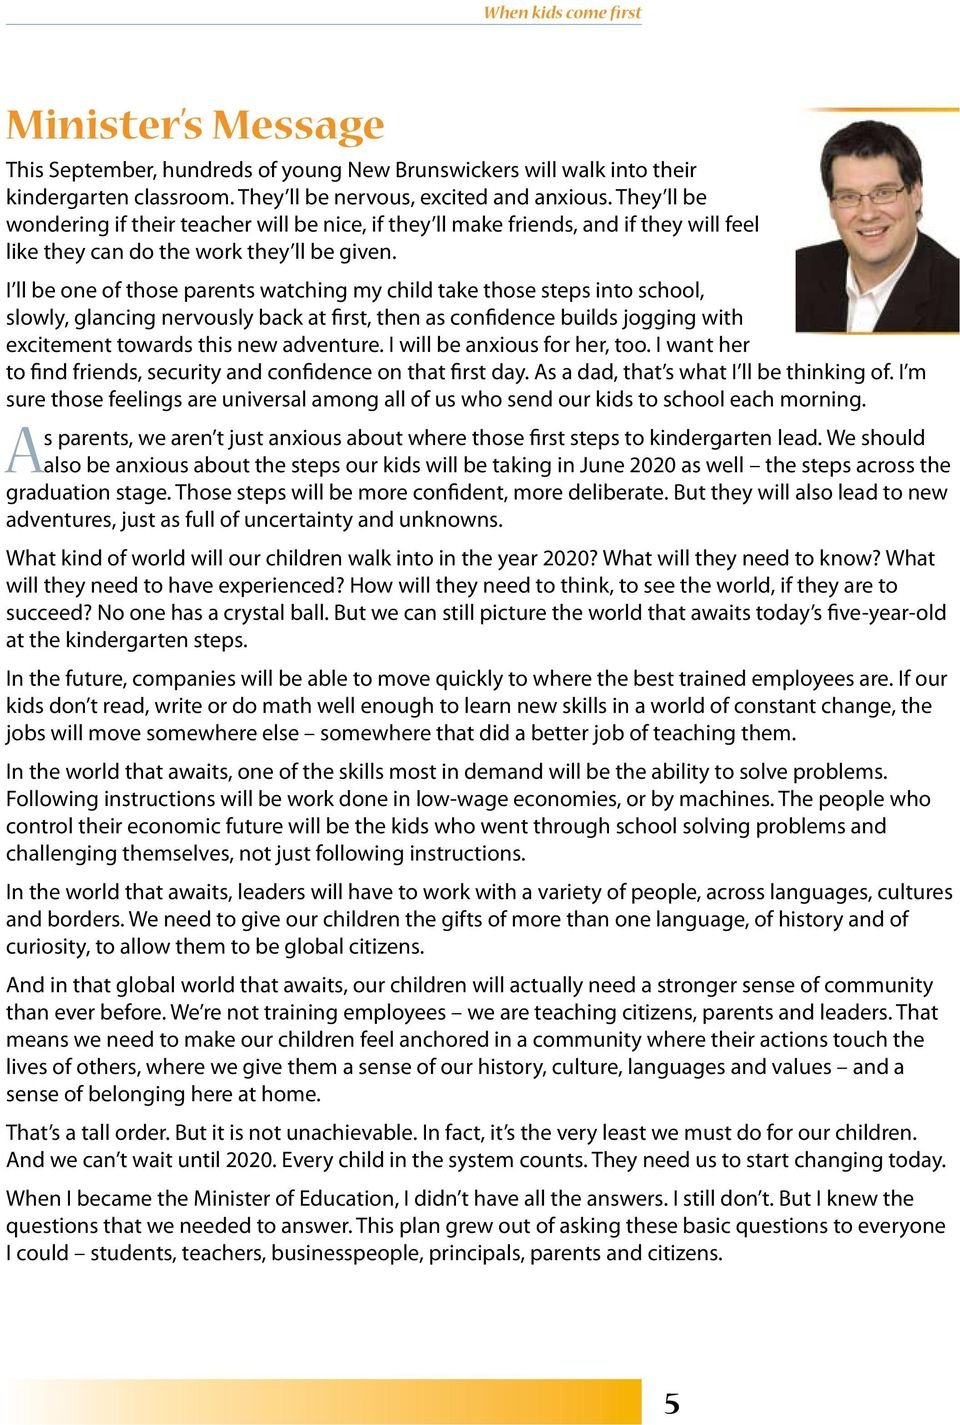 I ll be one of those parents watching my child take those steps into school, slowly, glancing nervously back at first, then as confidence builds jogging with excitement towards this new adventure.